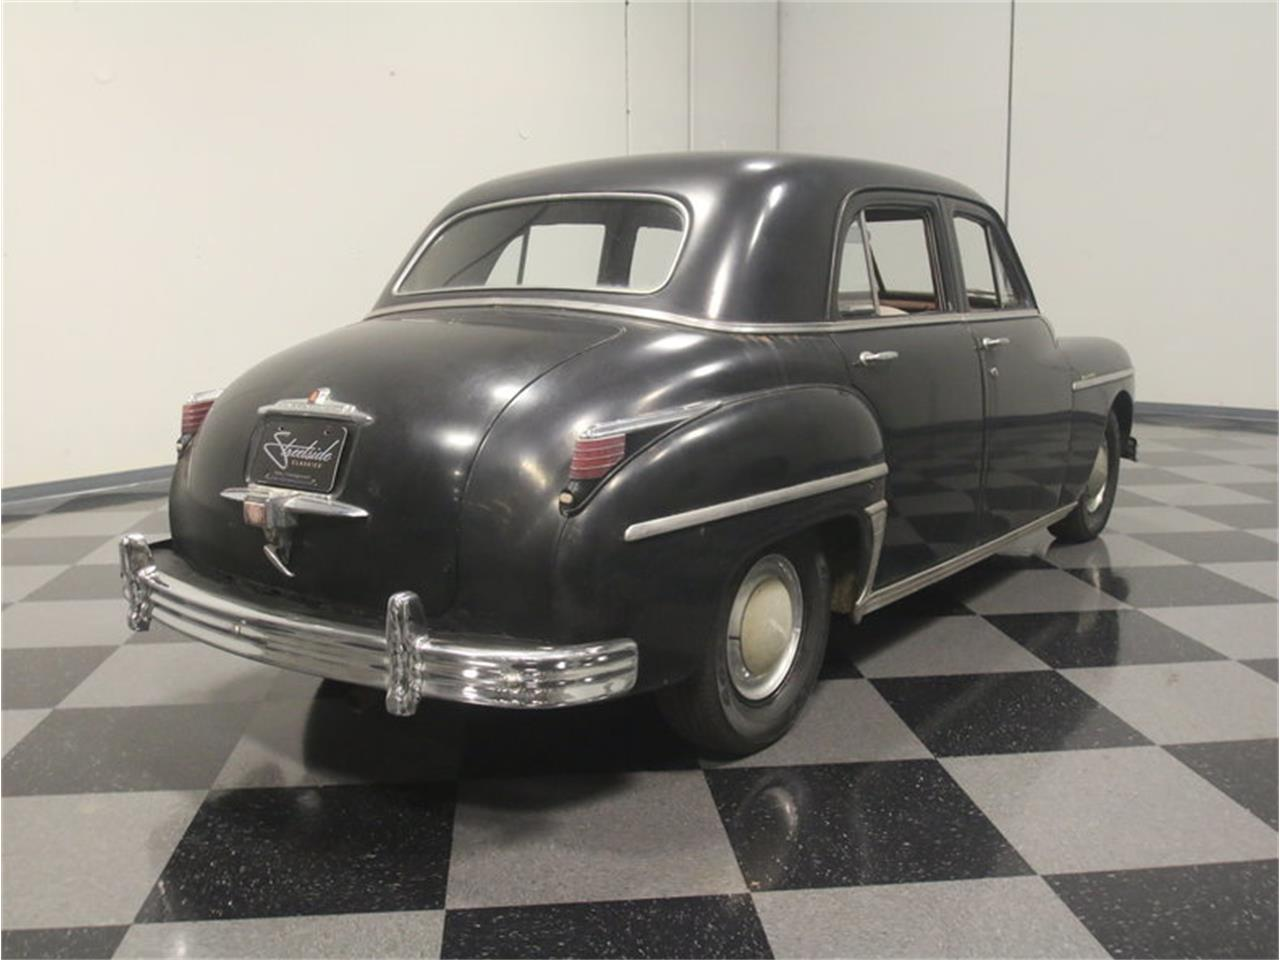 Large Picture of '49 Plymouth Special Deluxe located in Georgia Offered by Streetside Classics - Atlanta - L551